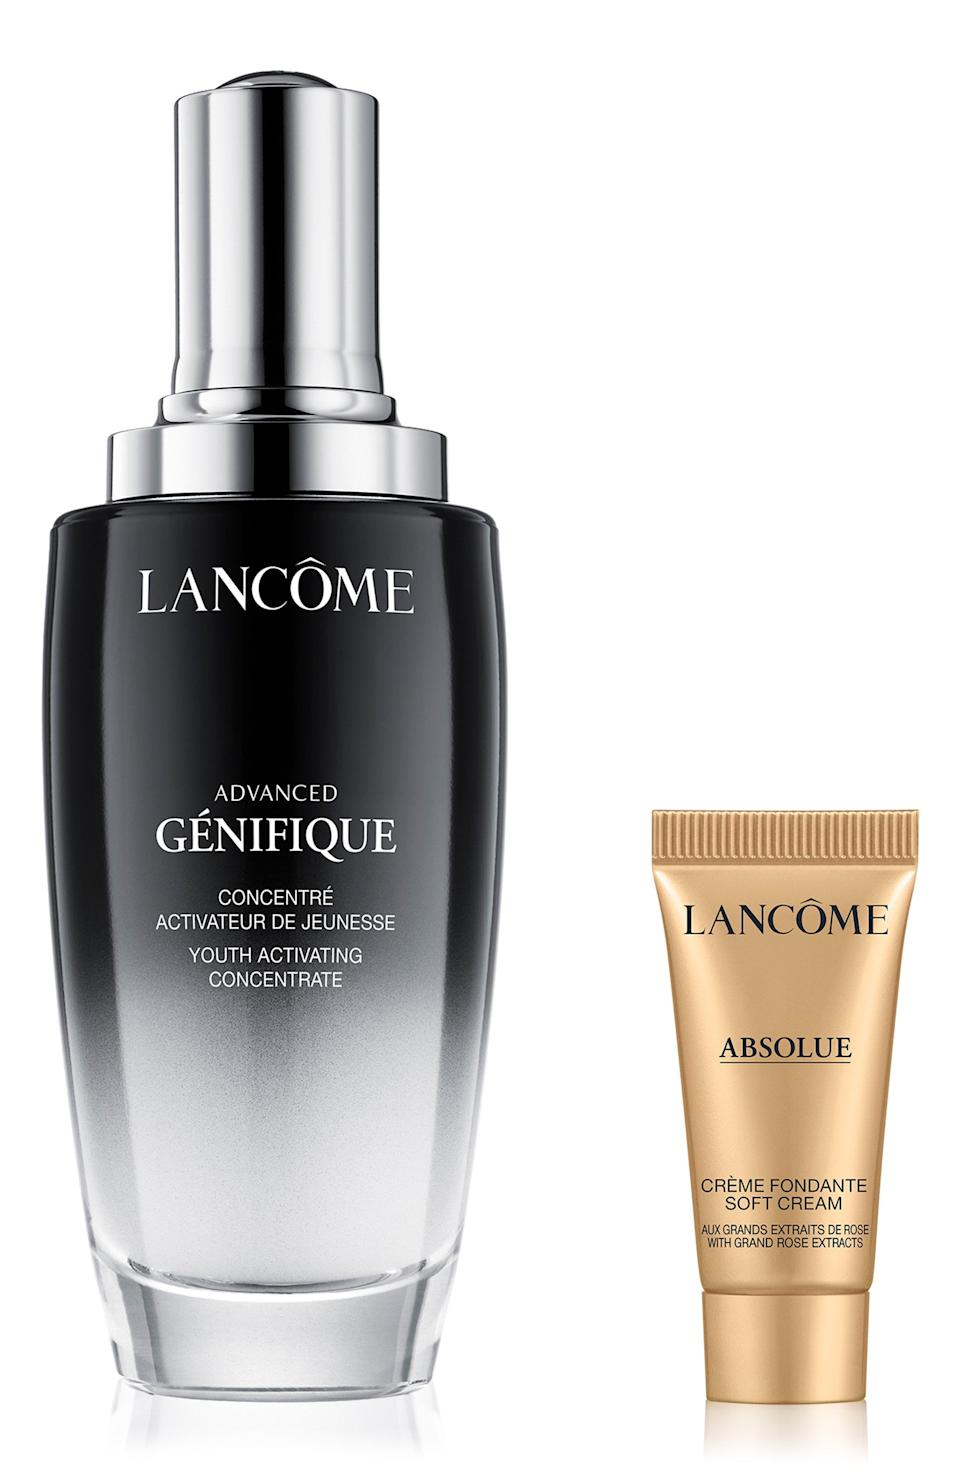 """<p><strong>Lancôme</strong></p><p>nordstrom.com</p><p><a href=""""https://go.redirectingat.com?id=74968X1596630&url=https%3A%2F%2Fwww.nordstrom.com%2Fs%2Flancome-jumbo-size-advanced-genifique-radiance-boosting-set-218-value%2F6090084&sref=https%3A%2F%2Fwww.harpersbazaar.com%2Fbeauty%2Fg36991550%2Fnordstrom-anniversary-sale-beauty-deals%2F"""" rel=""""nofollow noopener"""" target=""""_blank"""" data-ylk=""""slk:Shop Now"""" class=""""link rapid-noclick-resp"""">Shop Now</a></p><p><strong>Set: $133</strong></p><p><strong>Value: $218</strong></p><p>Lancôme's Advanced Génifique Radiance, also a <a href=""""https://www.harpersbazaar.com/beauty/skin-care/a26412880/anti-aging-awards/"""" rel=""""nofollow noopener"""" target=""""_blank"""" data-ylk=""""slk:2021 BAZAAR Anti-Aging Awards winner"""" class=""""link rapid-noclick-resp"""">2021 BAZAAR Anti-Aging Awards winner</a>, is a dry-skin friendly brightening serum formulated with all the greatest hits. Think: hyaluronic acid, vitamin C, and ceramides. In addition to an oversized version of the Advanced Génifique serum, this set also comes with a travel-size soft cream facial moisturizer.</p>"""